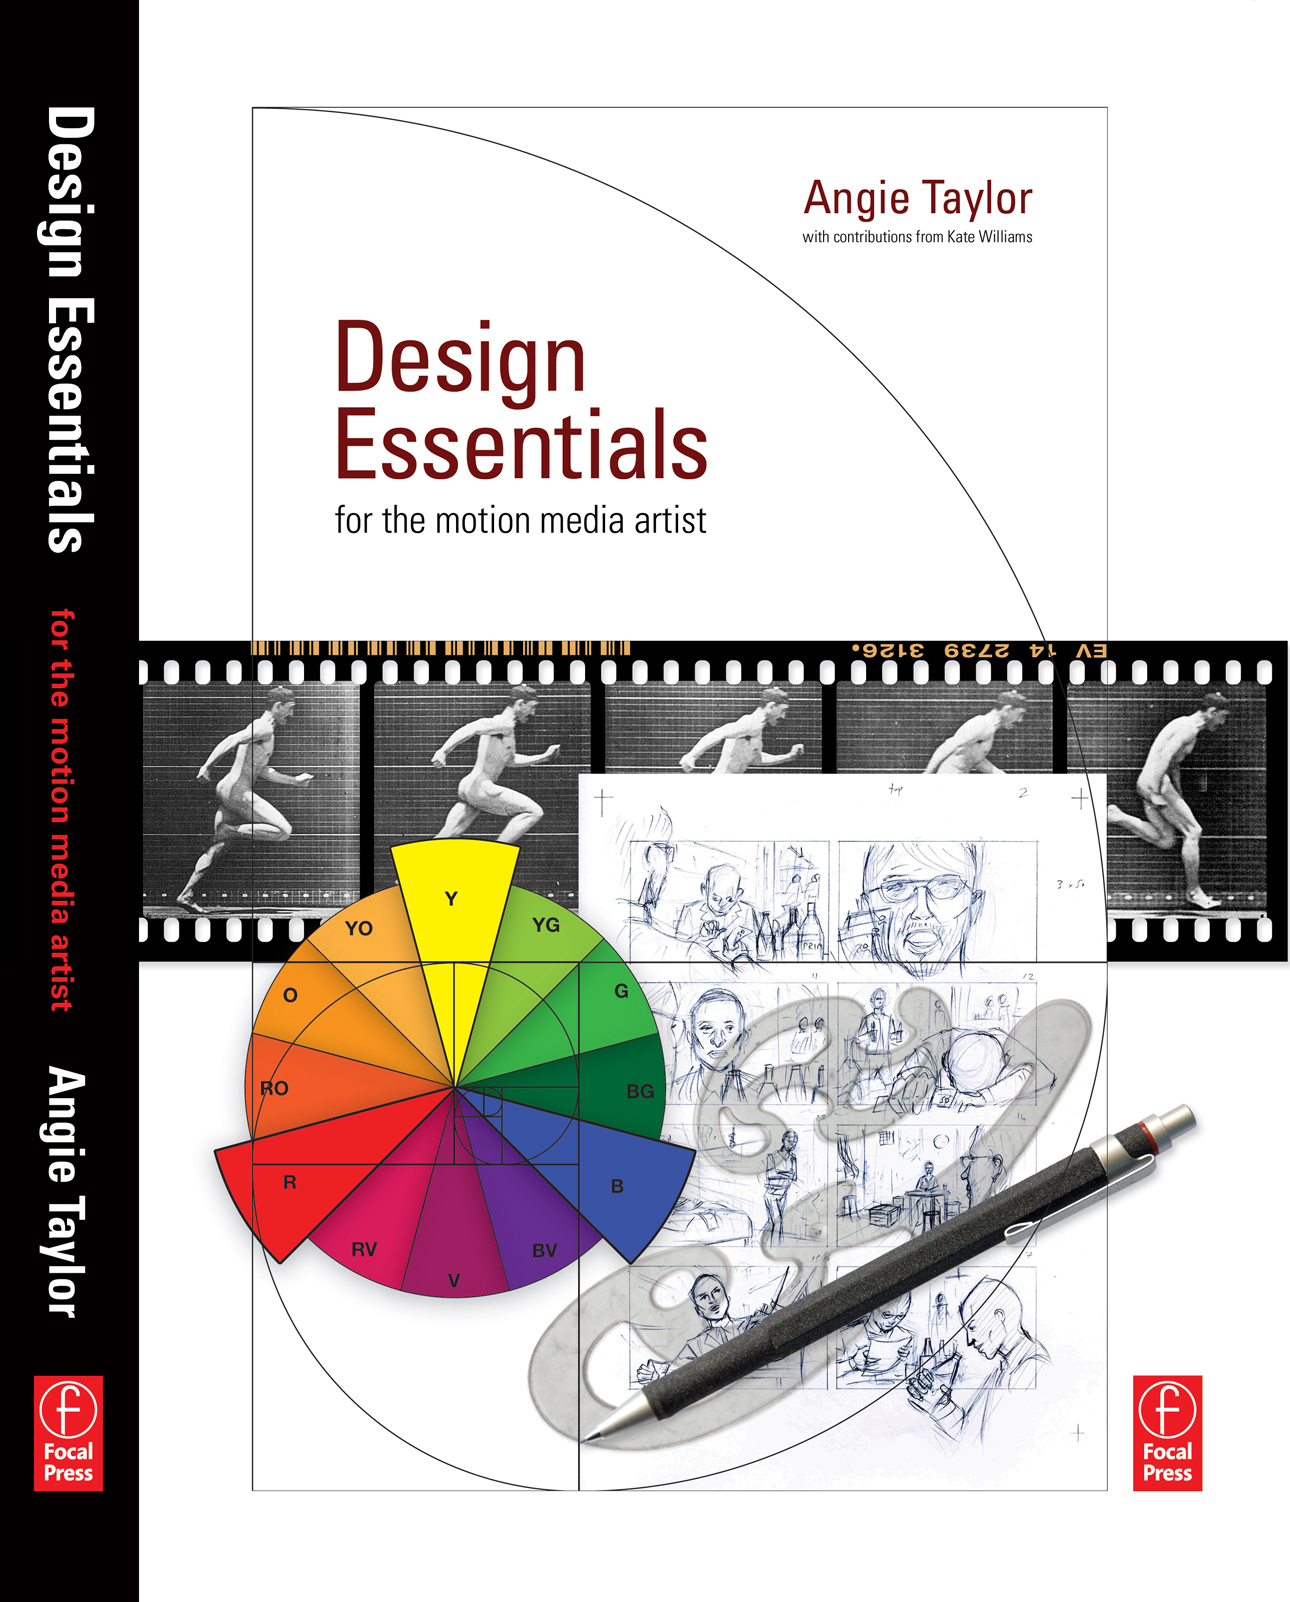 Design Essentials Resources